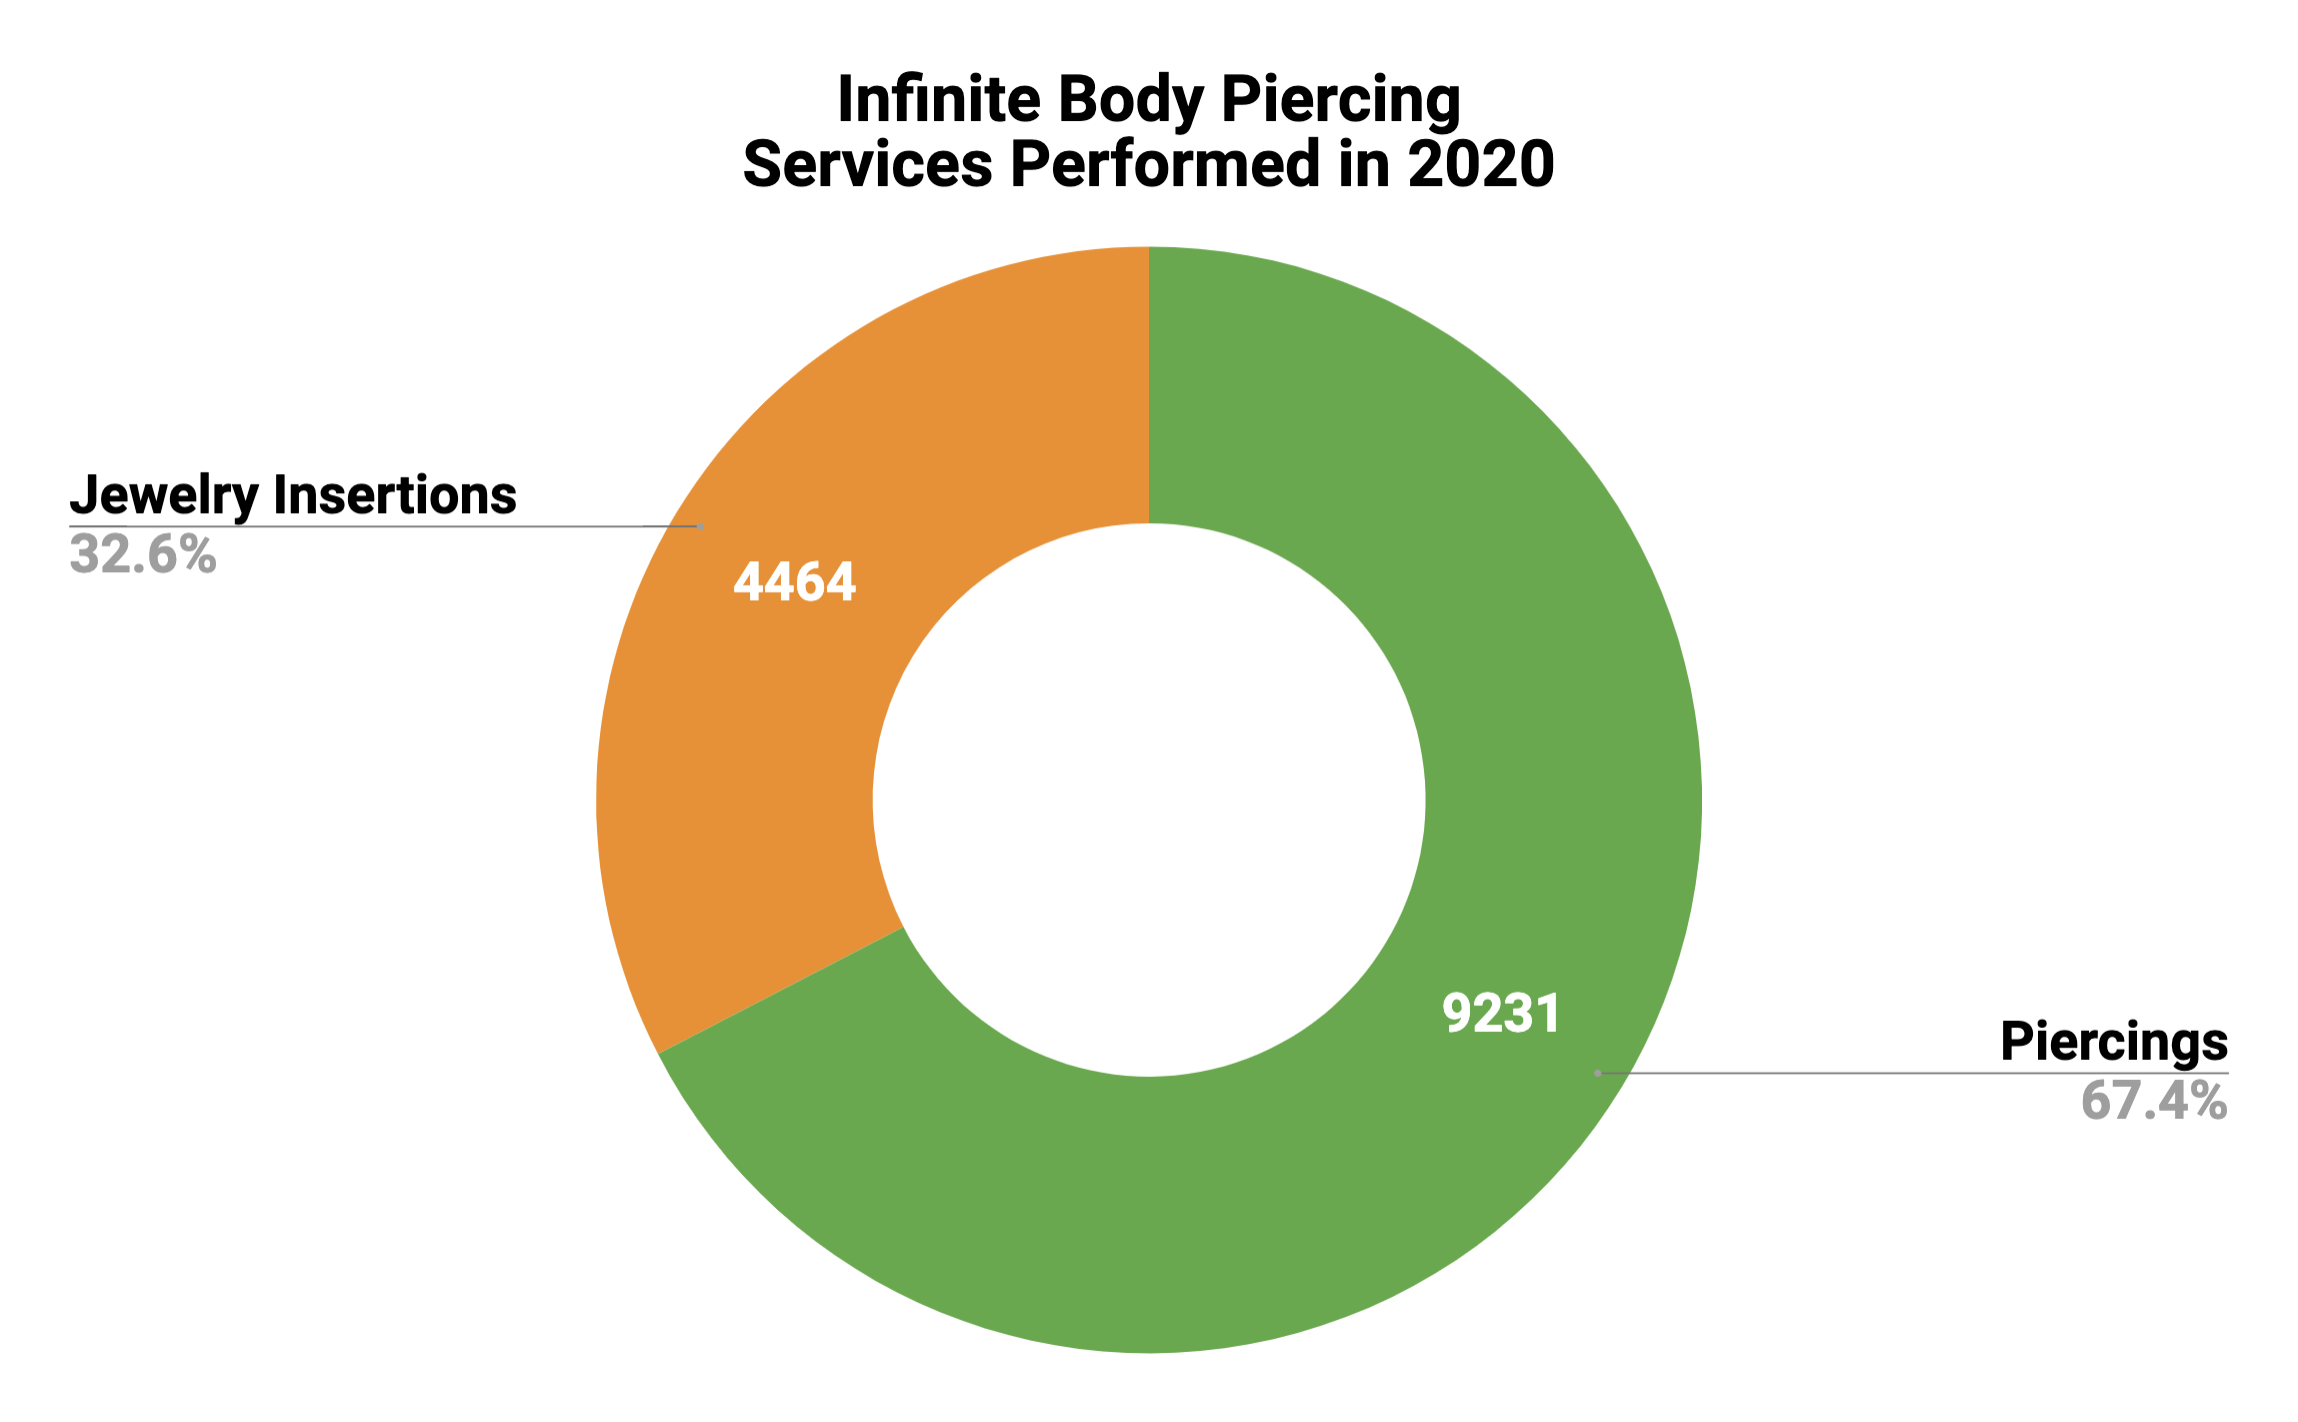 2020 Total Piercings and Jewelry Insertions